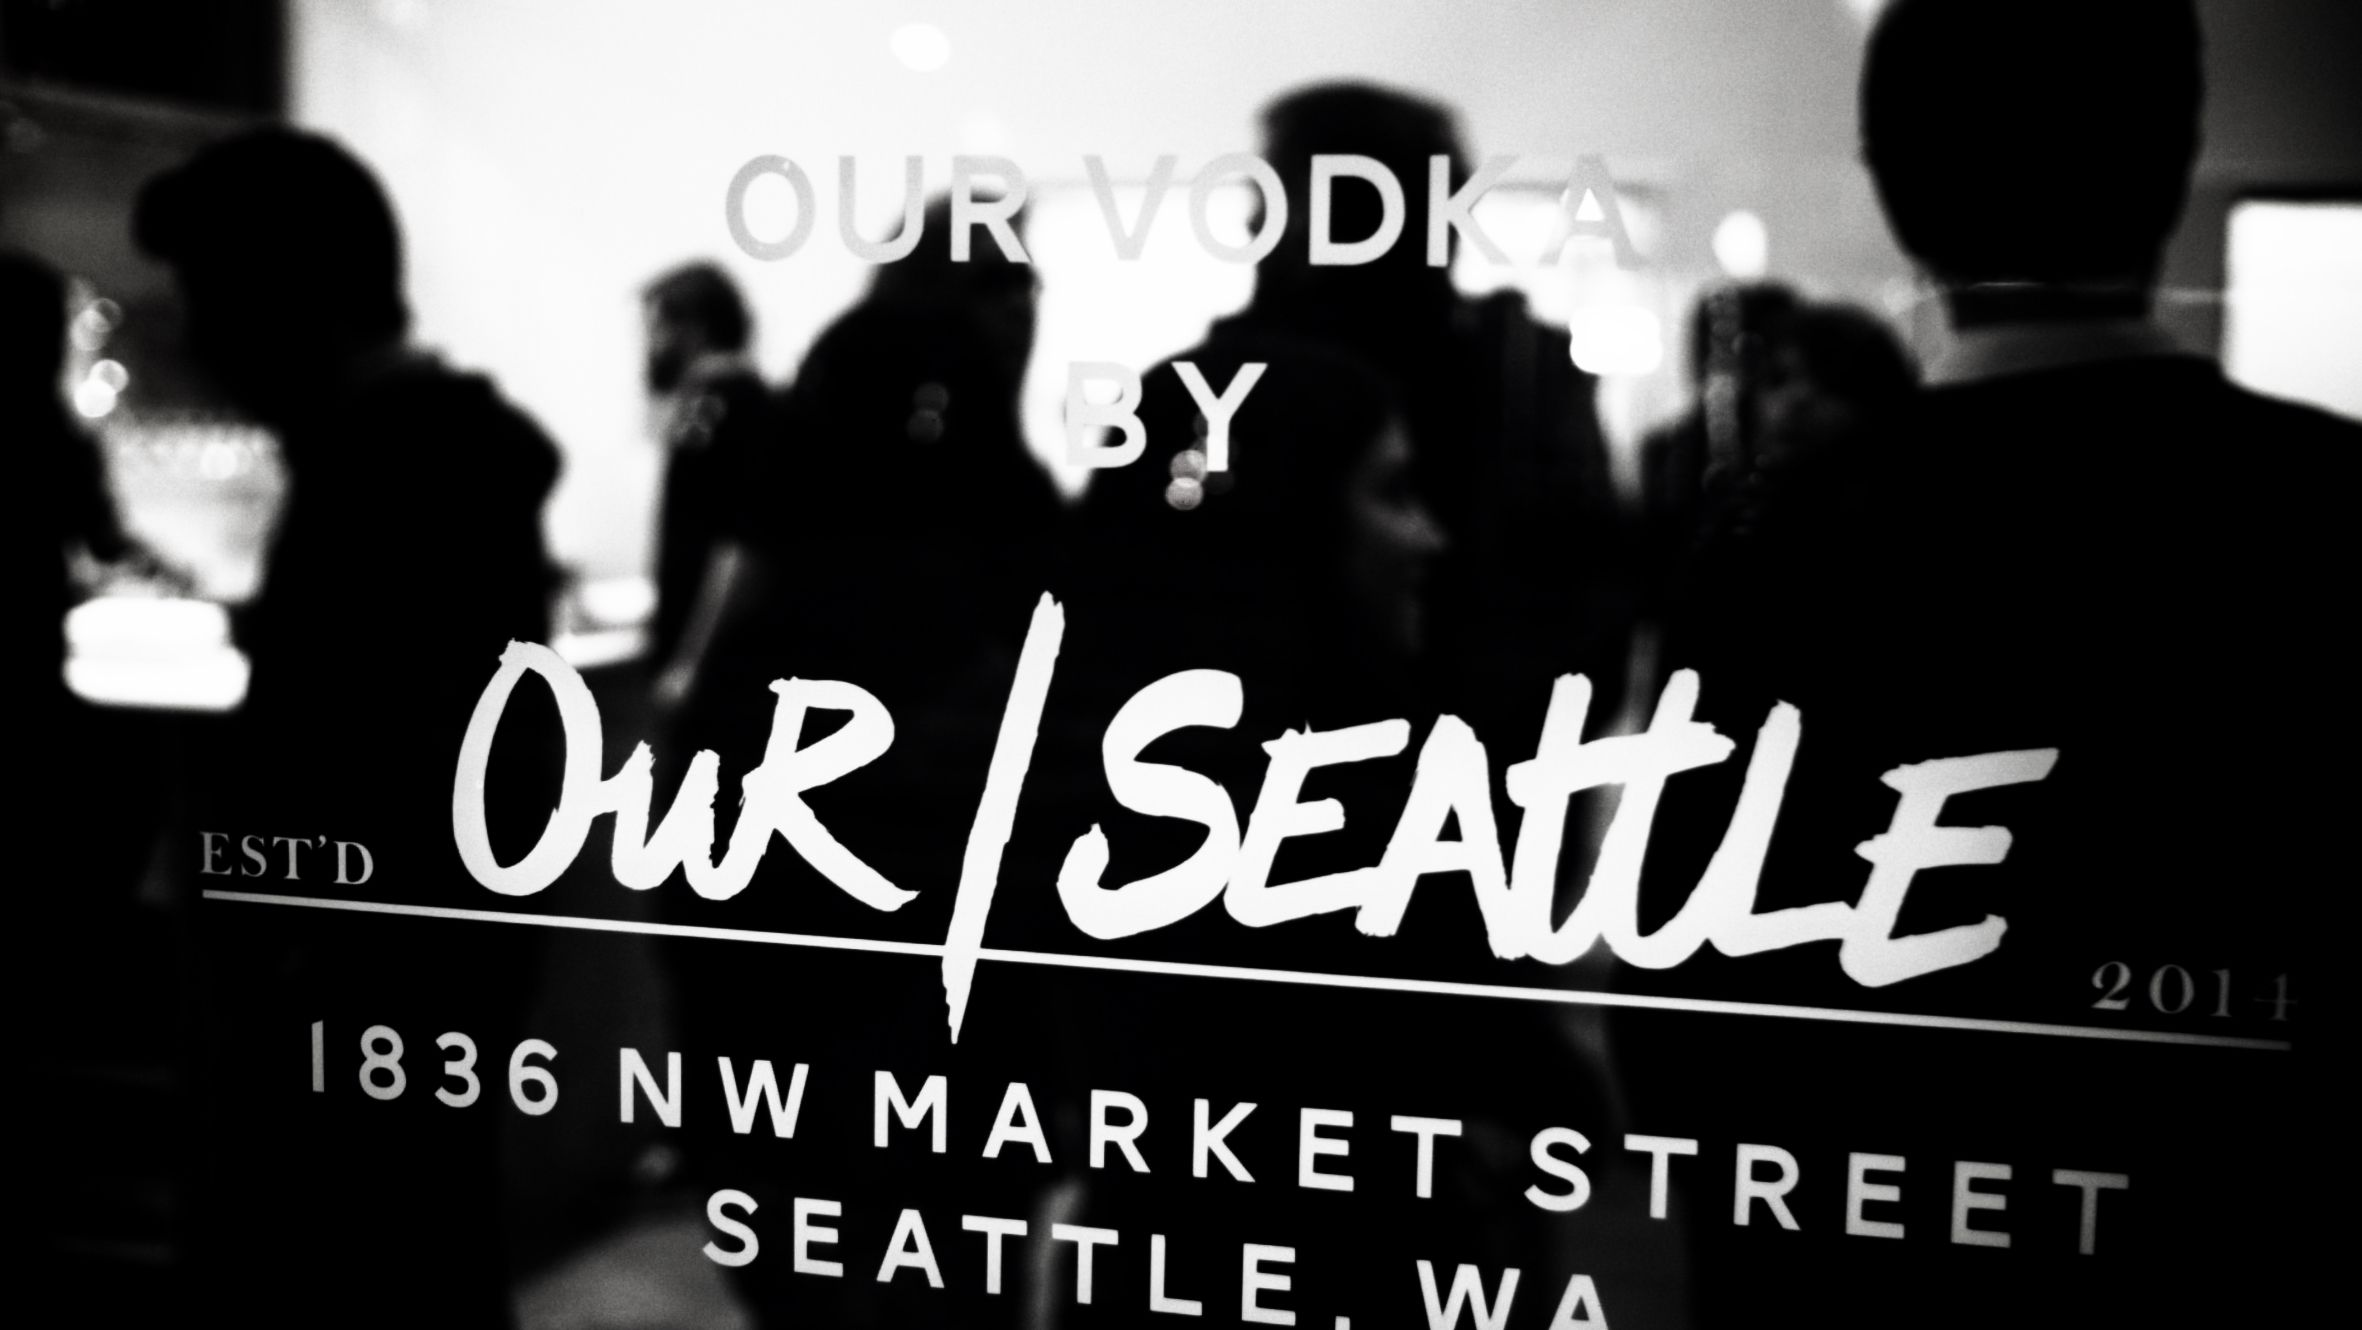 #ourvodka #ourseattle #seattle